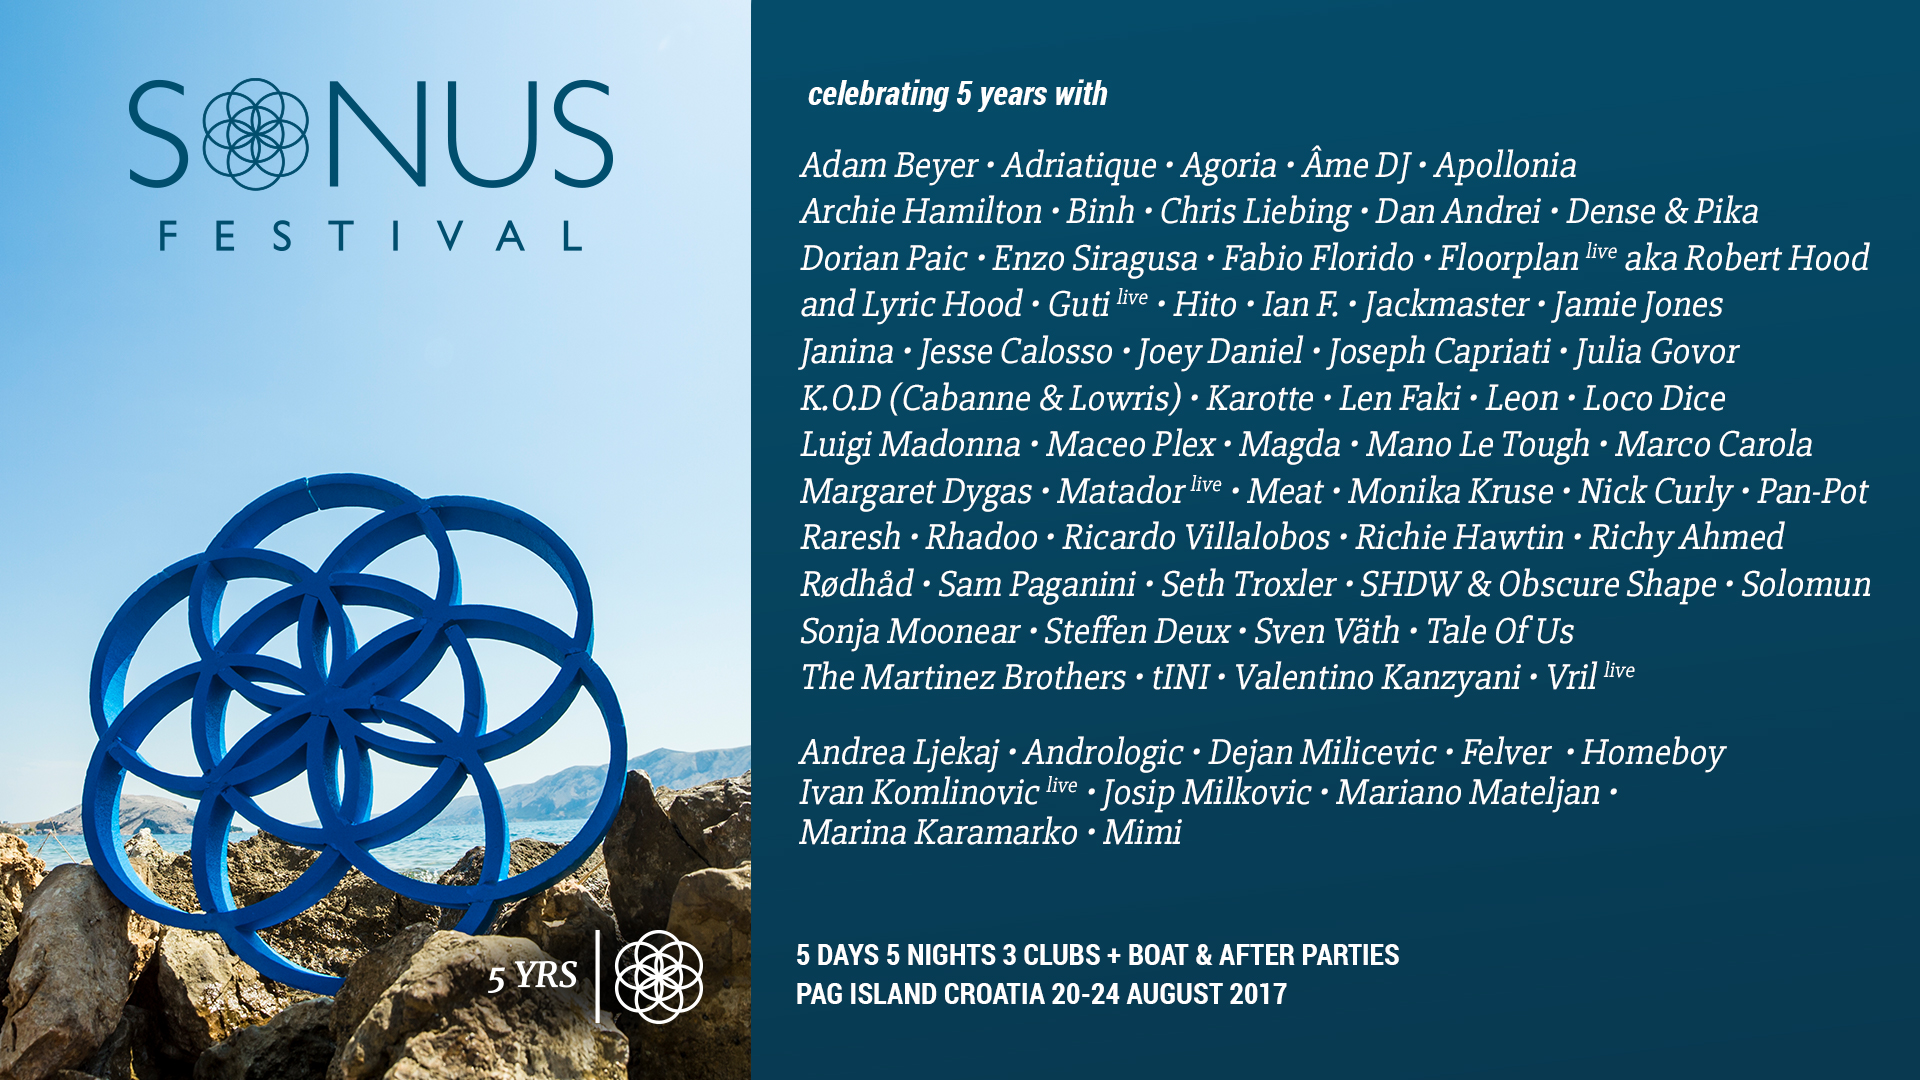 Sonus_FB_Header_fullhd